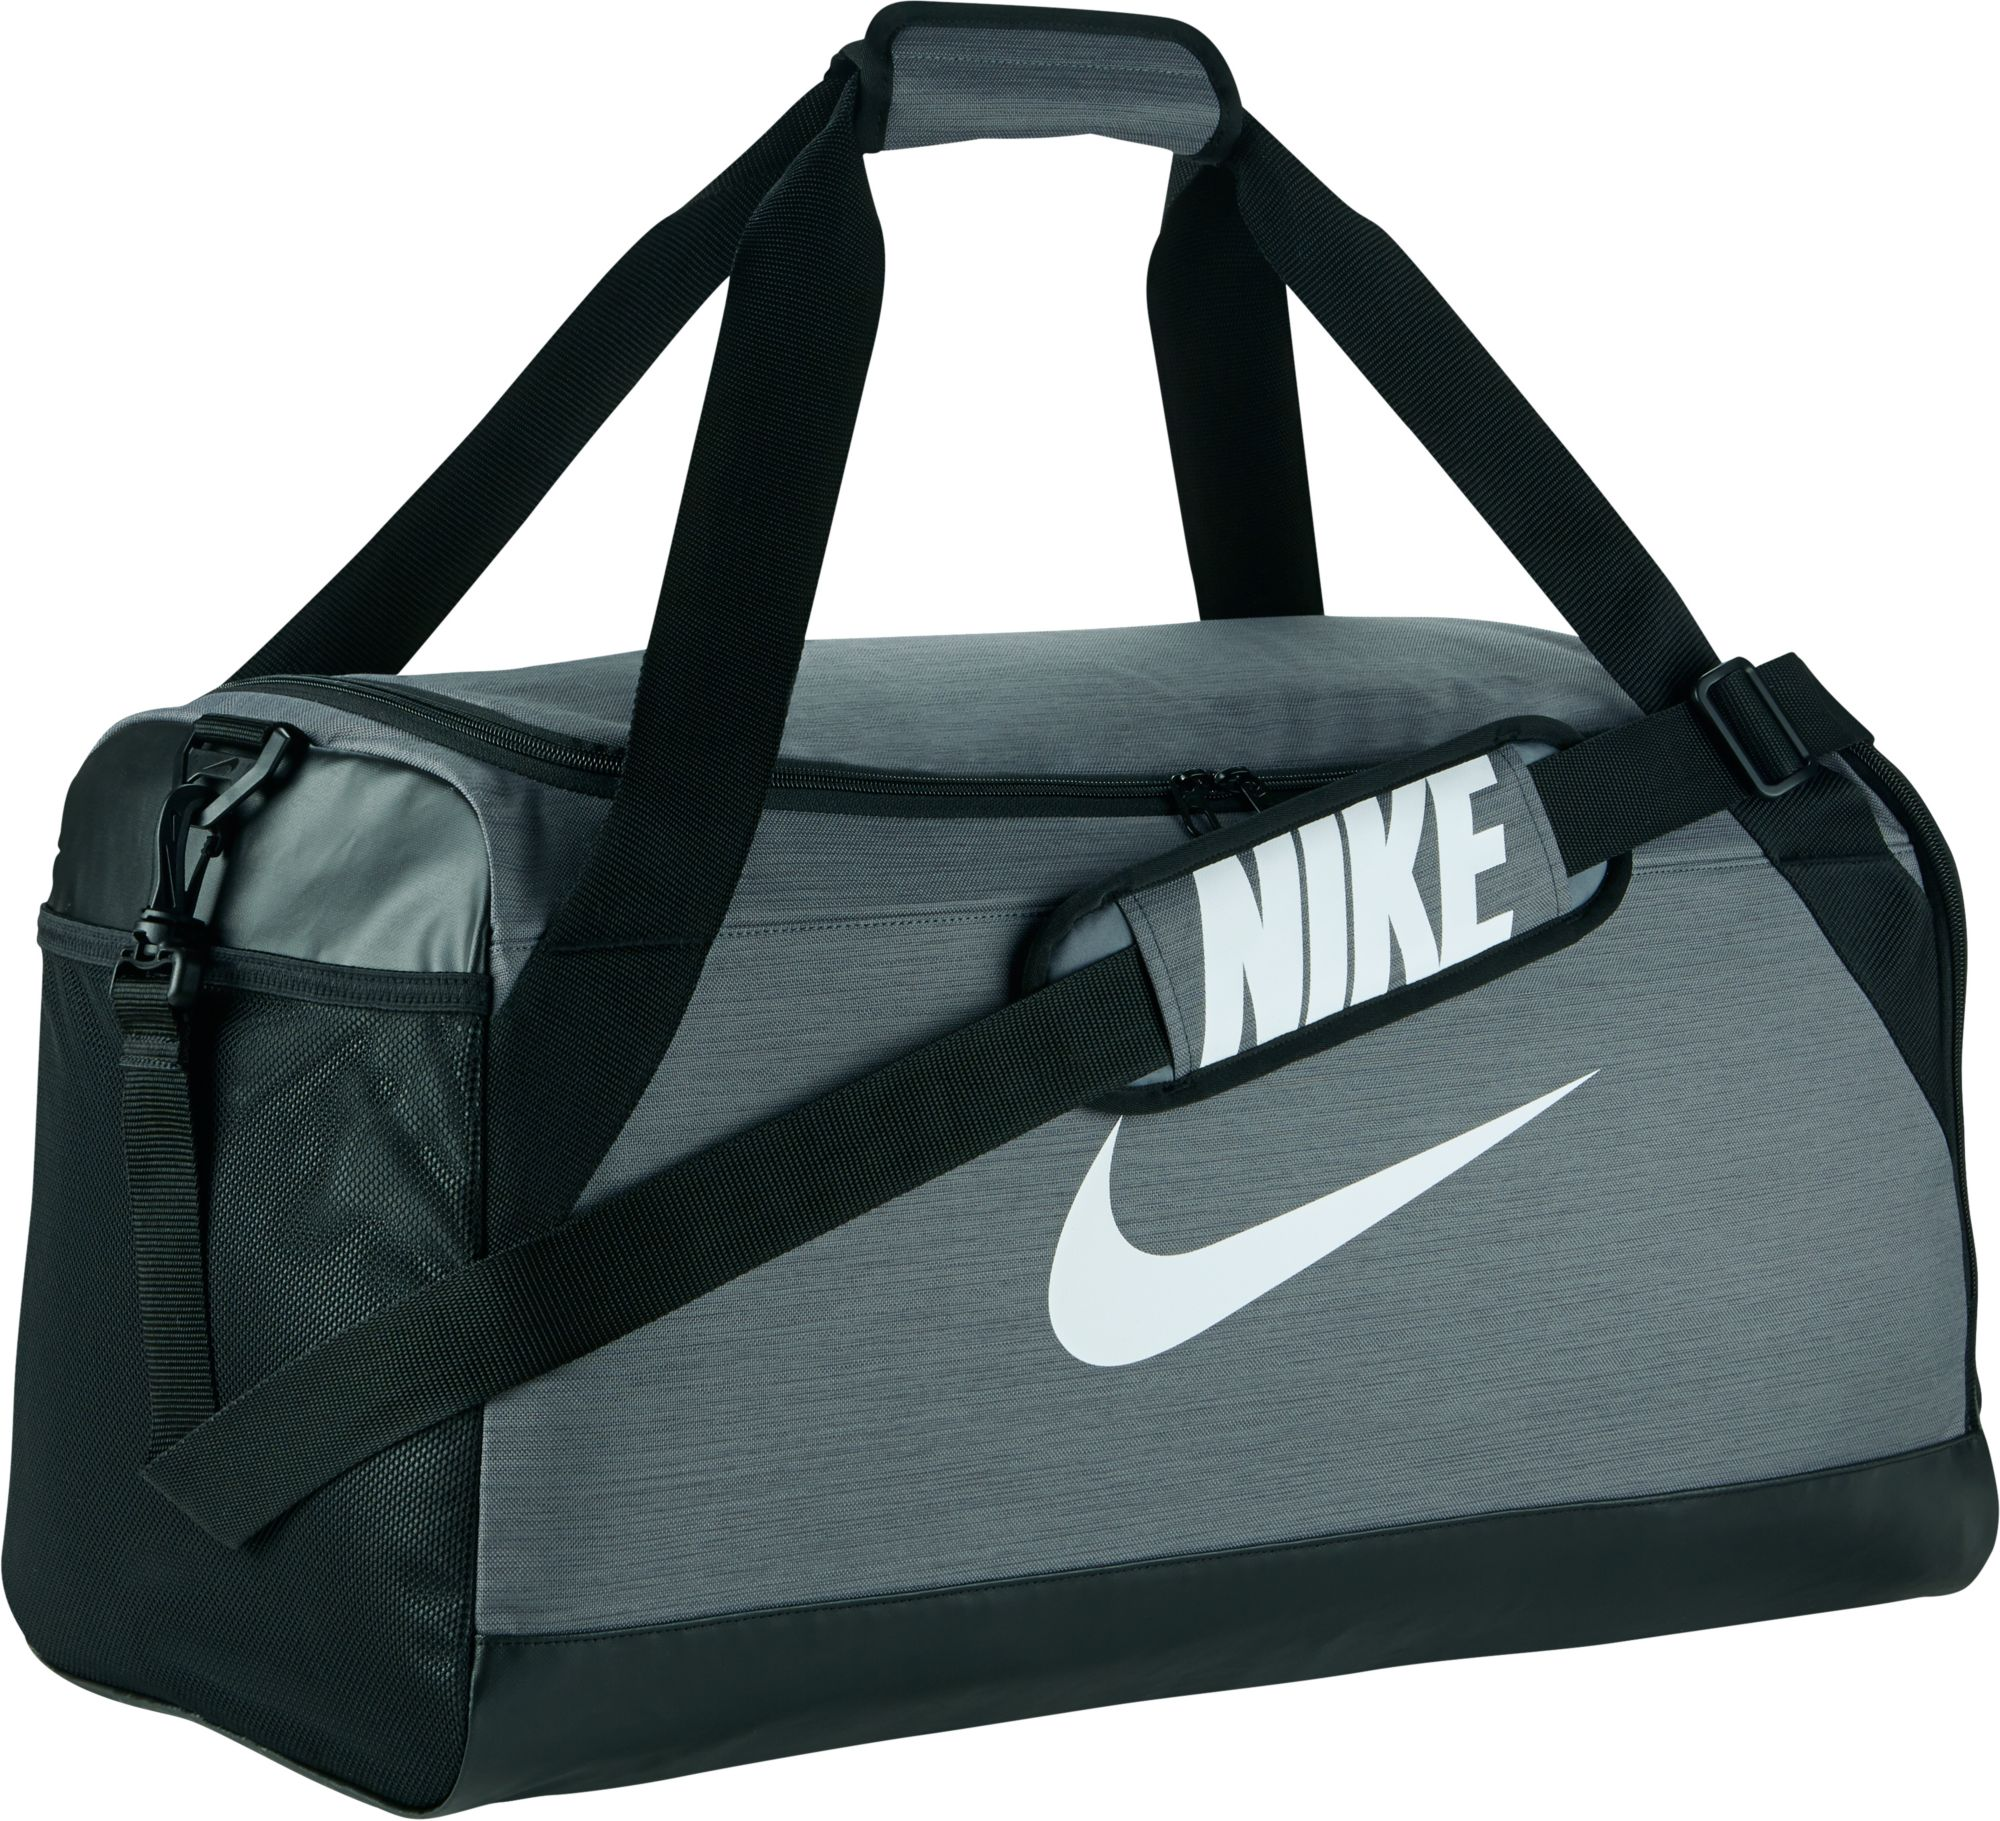 duffle bags nike brasilia medium training duffle bag YQKCSZT